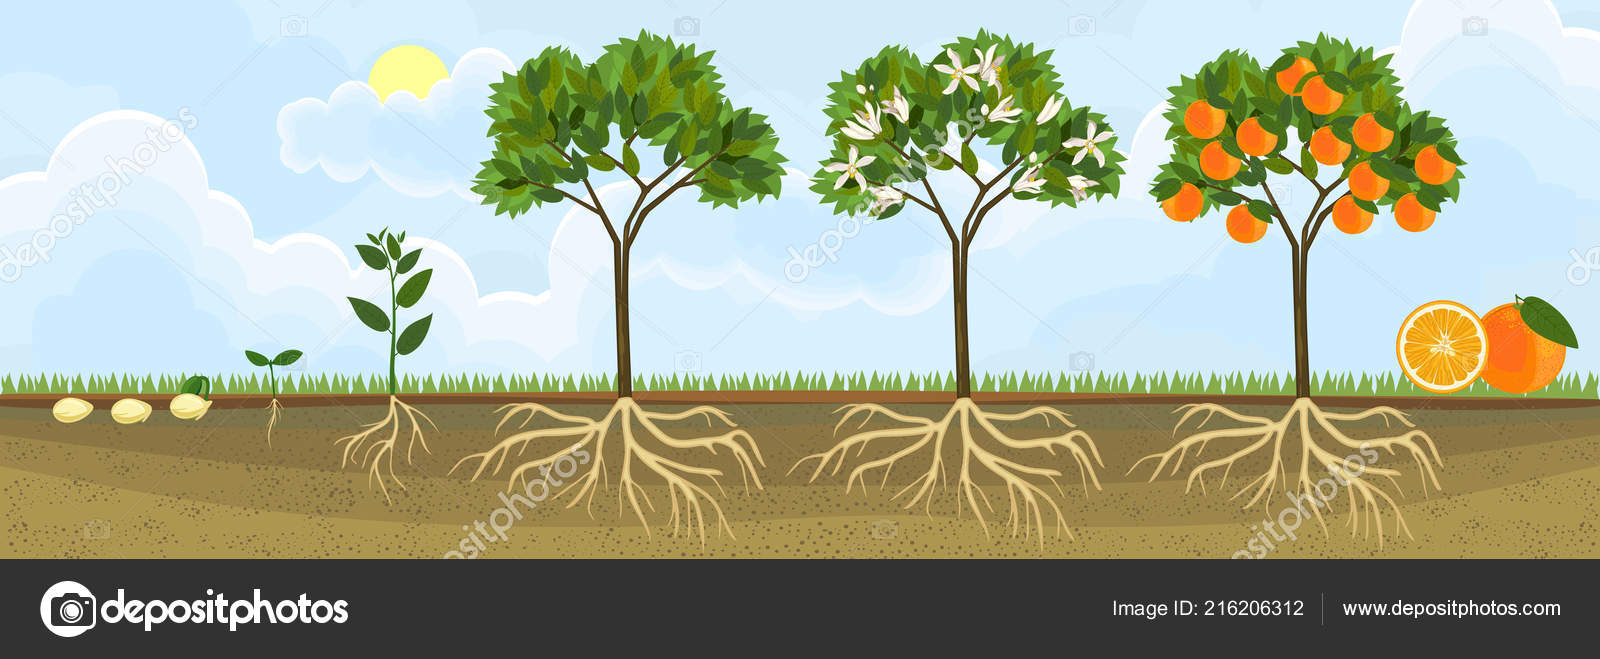 Life Cycle Orange Tree Stages Growth Seed Sprout Adult